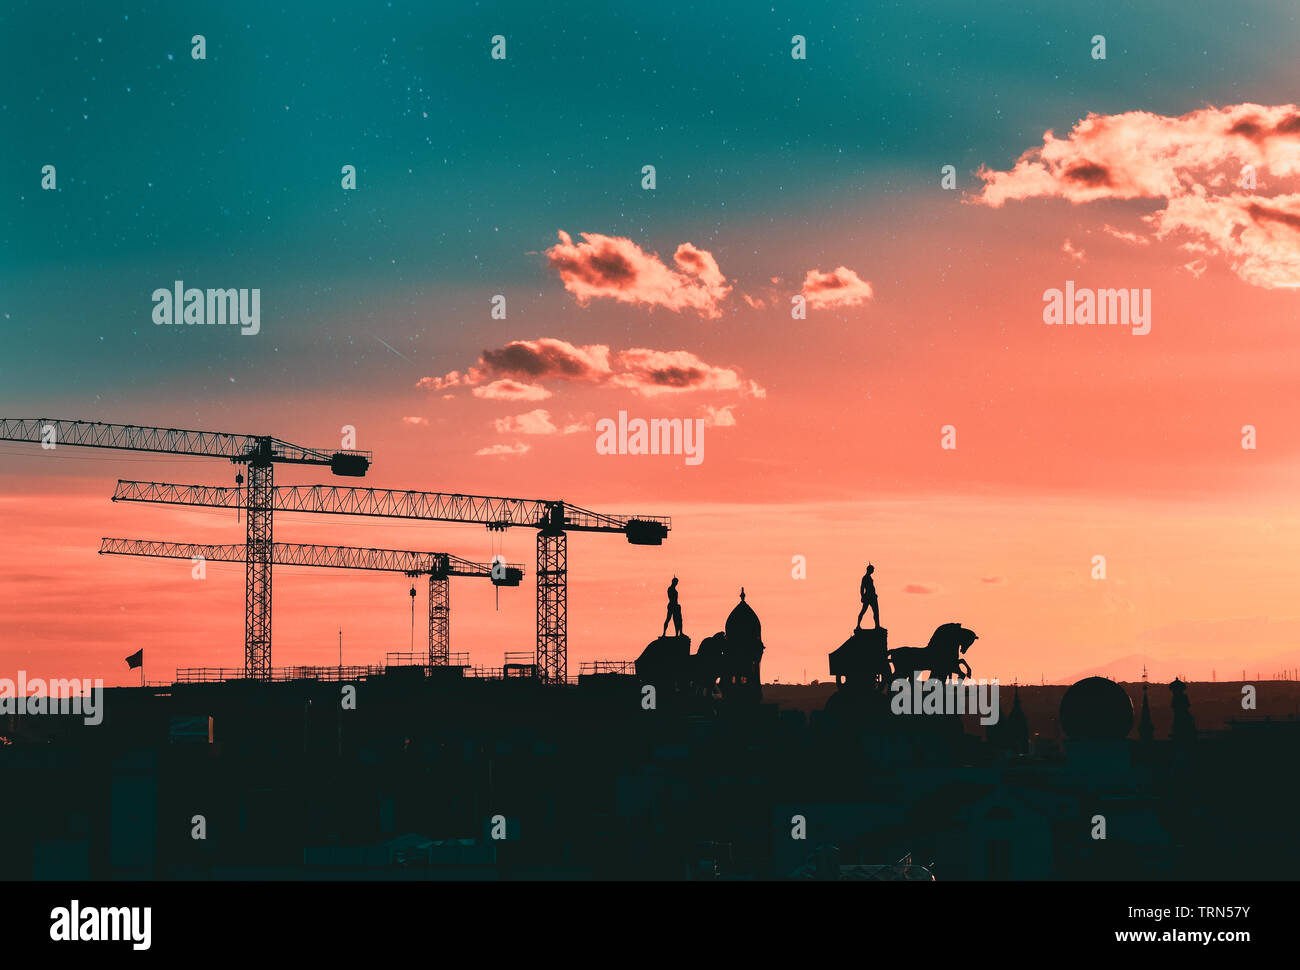 Silhouettes of cranes, statues and buildings of madrid, with a creative star sky of coral and teal color. Madrid, Spain - Stock Image